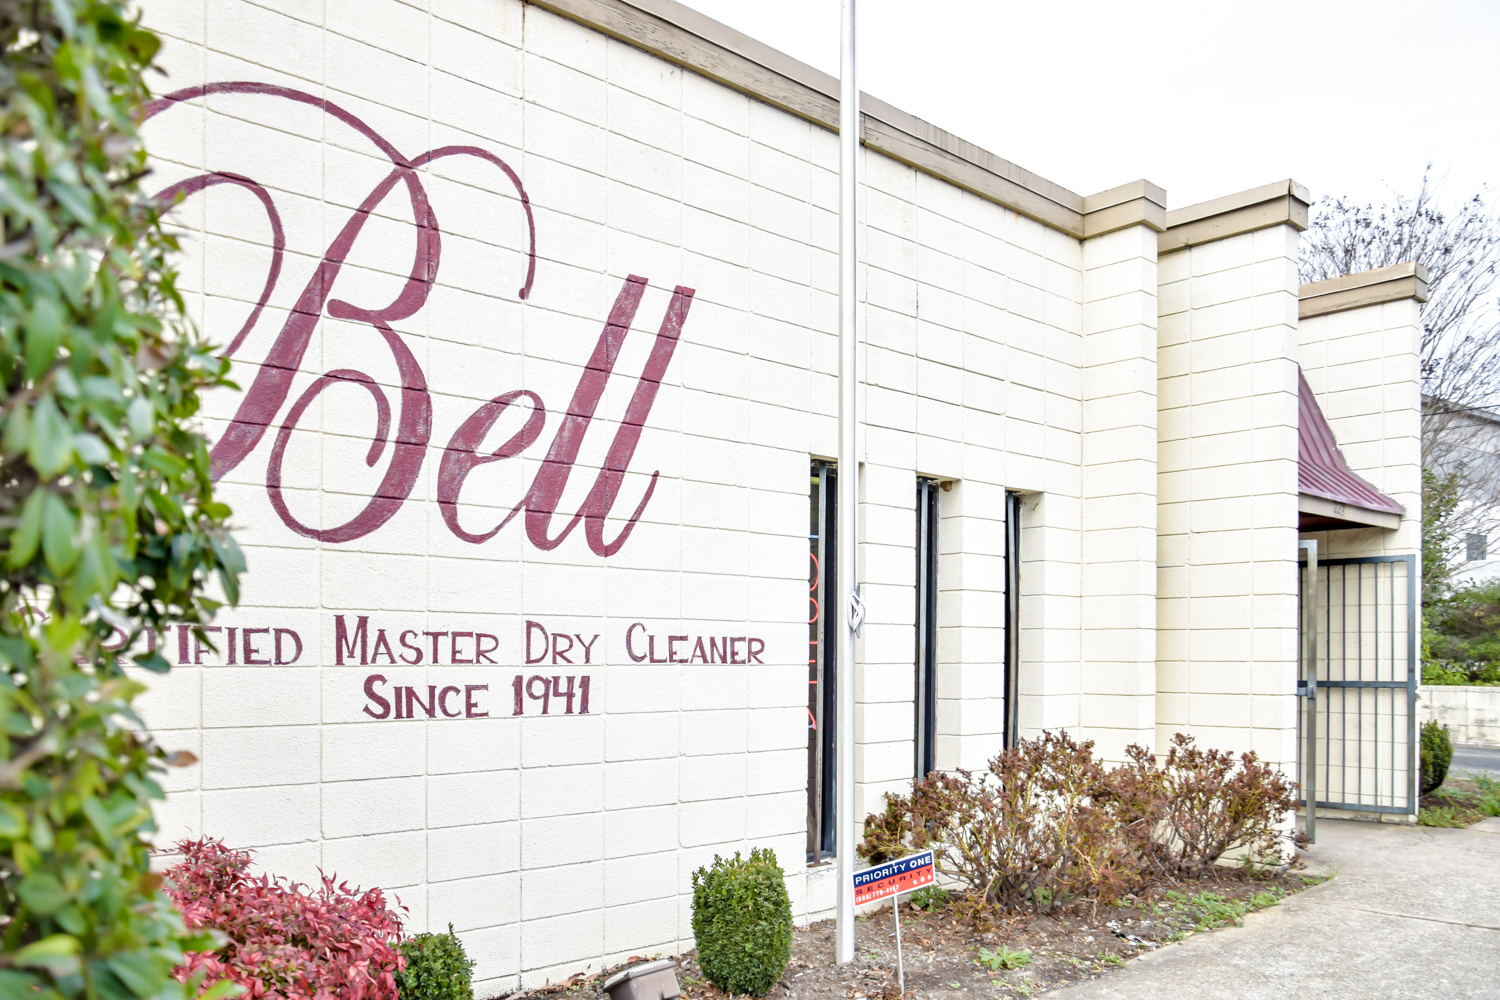 Bell Laundry & Cleaners, Inc